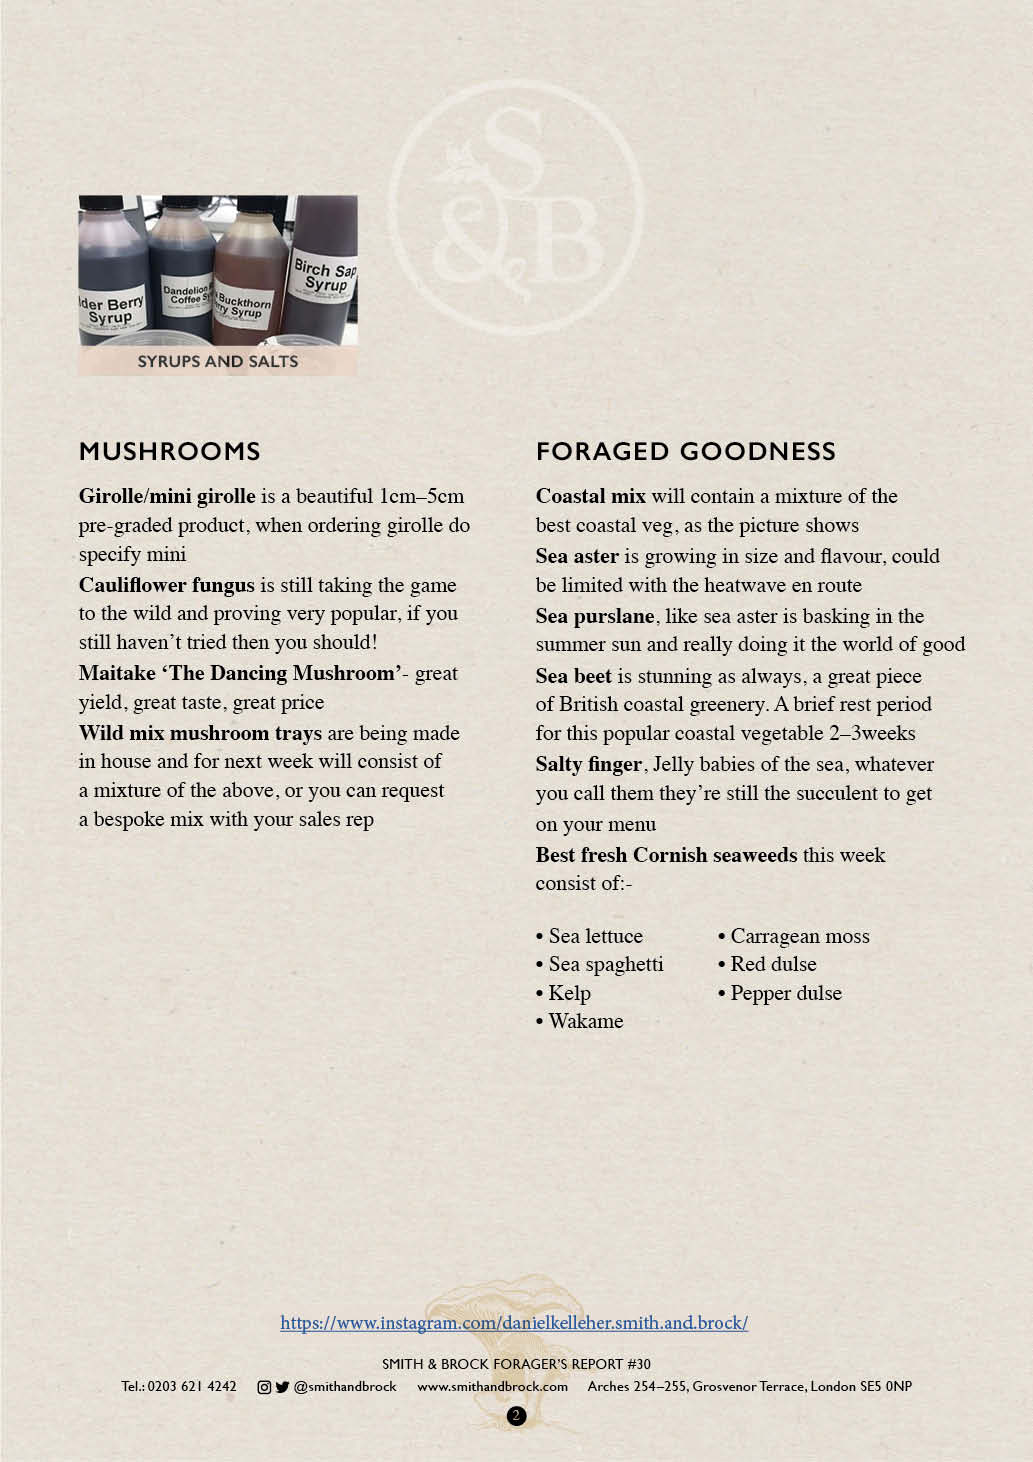 Smith&Brock Foraged Products Report 28 Oct 2019 302